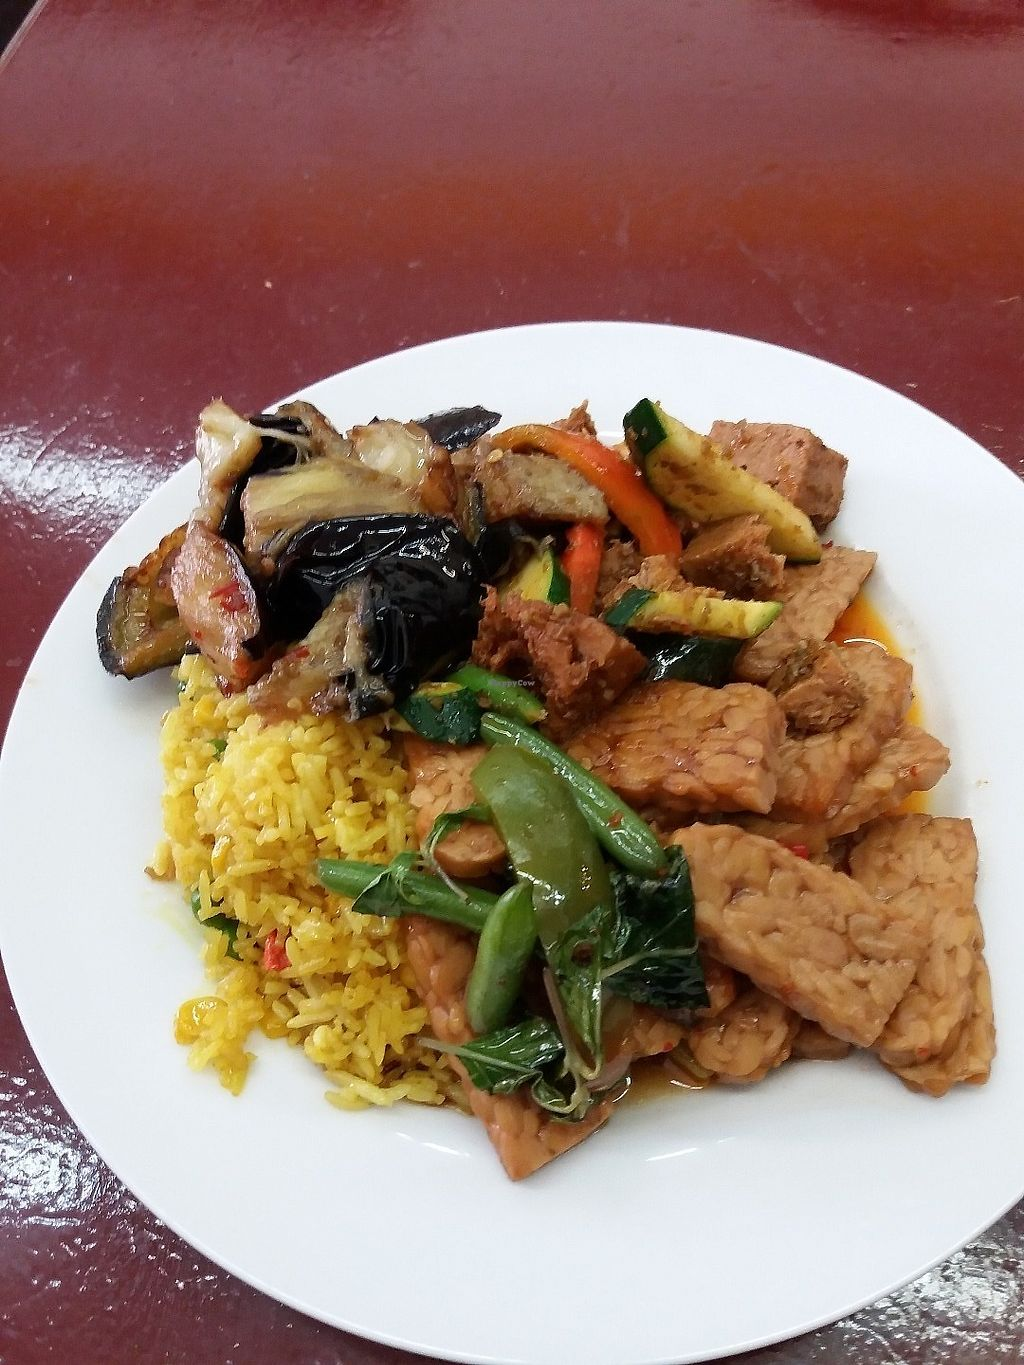 """Photo of Blossoming Lotus  by <a href=""""/members/profile/veganvirtues"""">veganvirtues</a> <br/>Tempeh, aubergine, veggies with fried rice $11:00 <br/> June 10, 2017  - <a href='/contact/abuse/image/6173/267574'>Report</a>"""